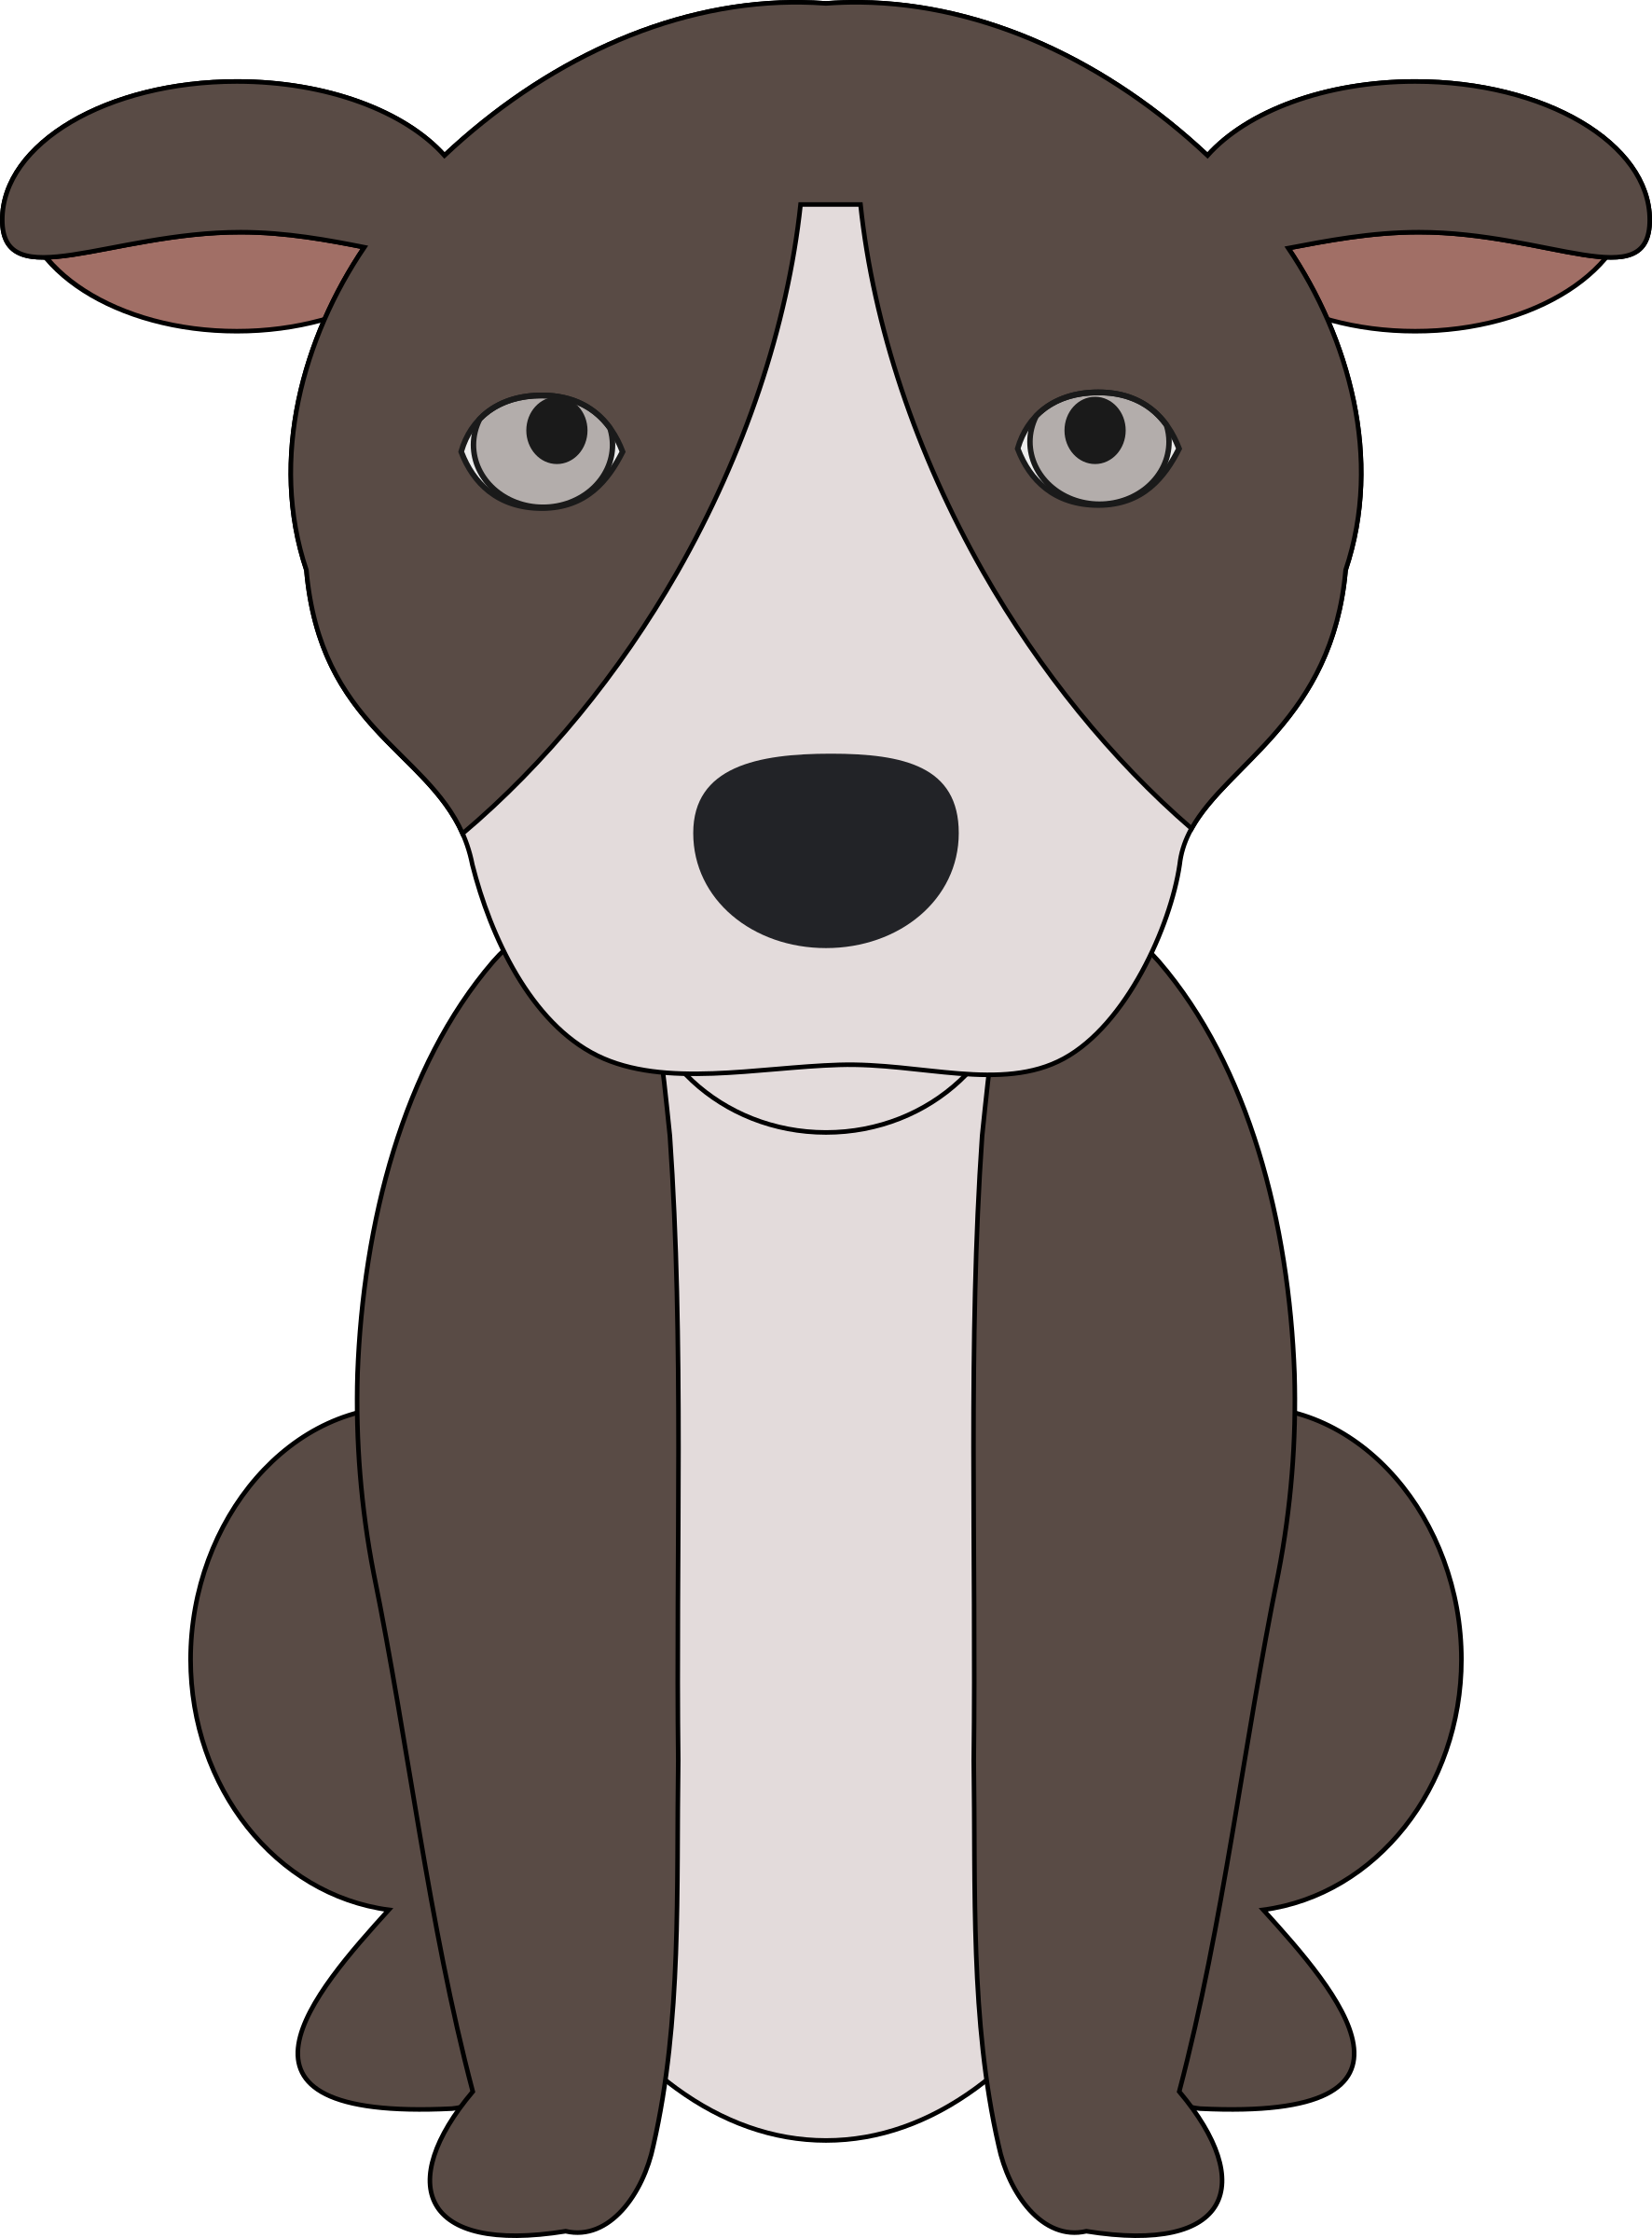 Pitbull Puppy clipart #1, Download drawings